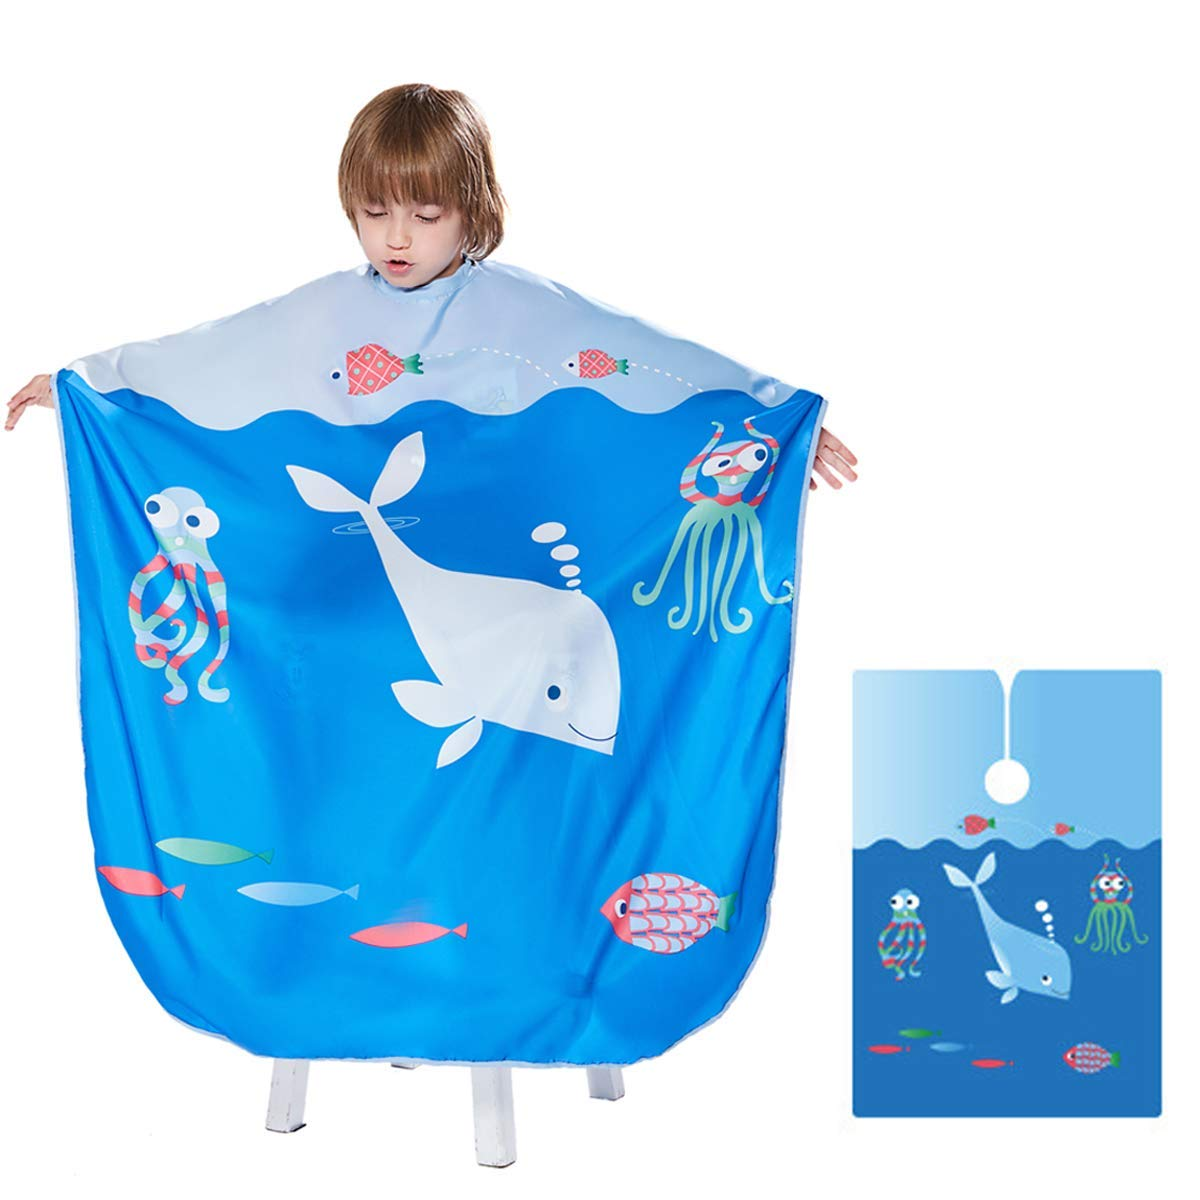 Barber Cape for Kids - Iusmnur Professional Hair Salon Cape with Adjustable Snap Closure Waterproof Hair Cutting Cape for Salon and Home - 51 x 36 inches (Ocean World)